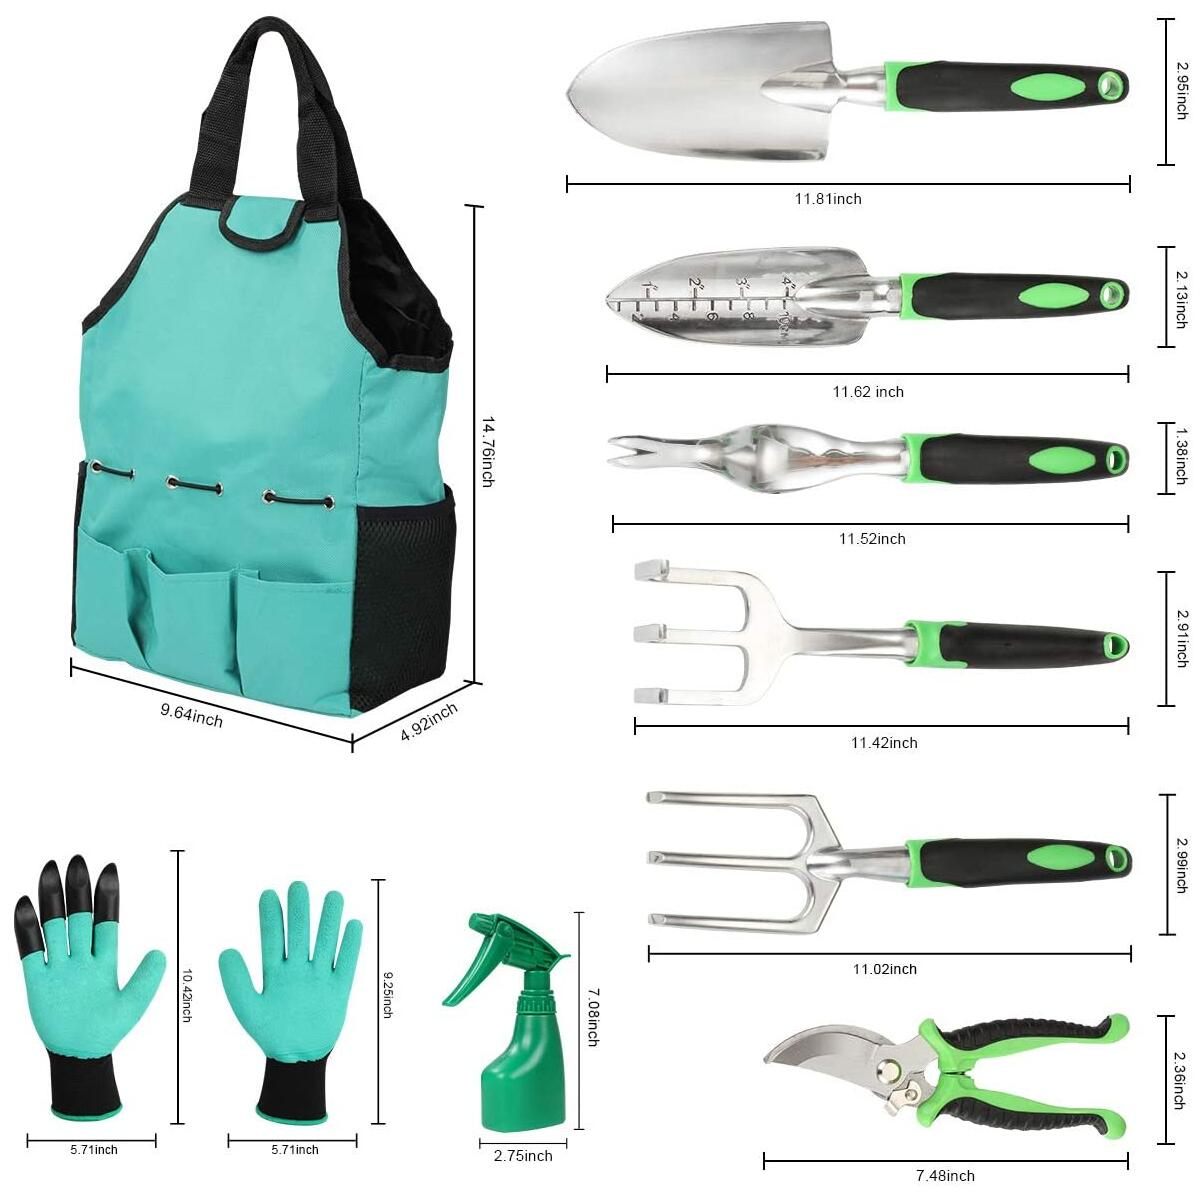 Garden Tools Set 10 Pieces, Gardening Kit with Heavy Duty Aluminum Hand Tool and Digging Claw Gardening Gloves for Men Women,Green